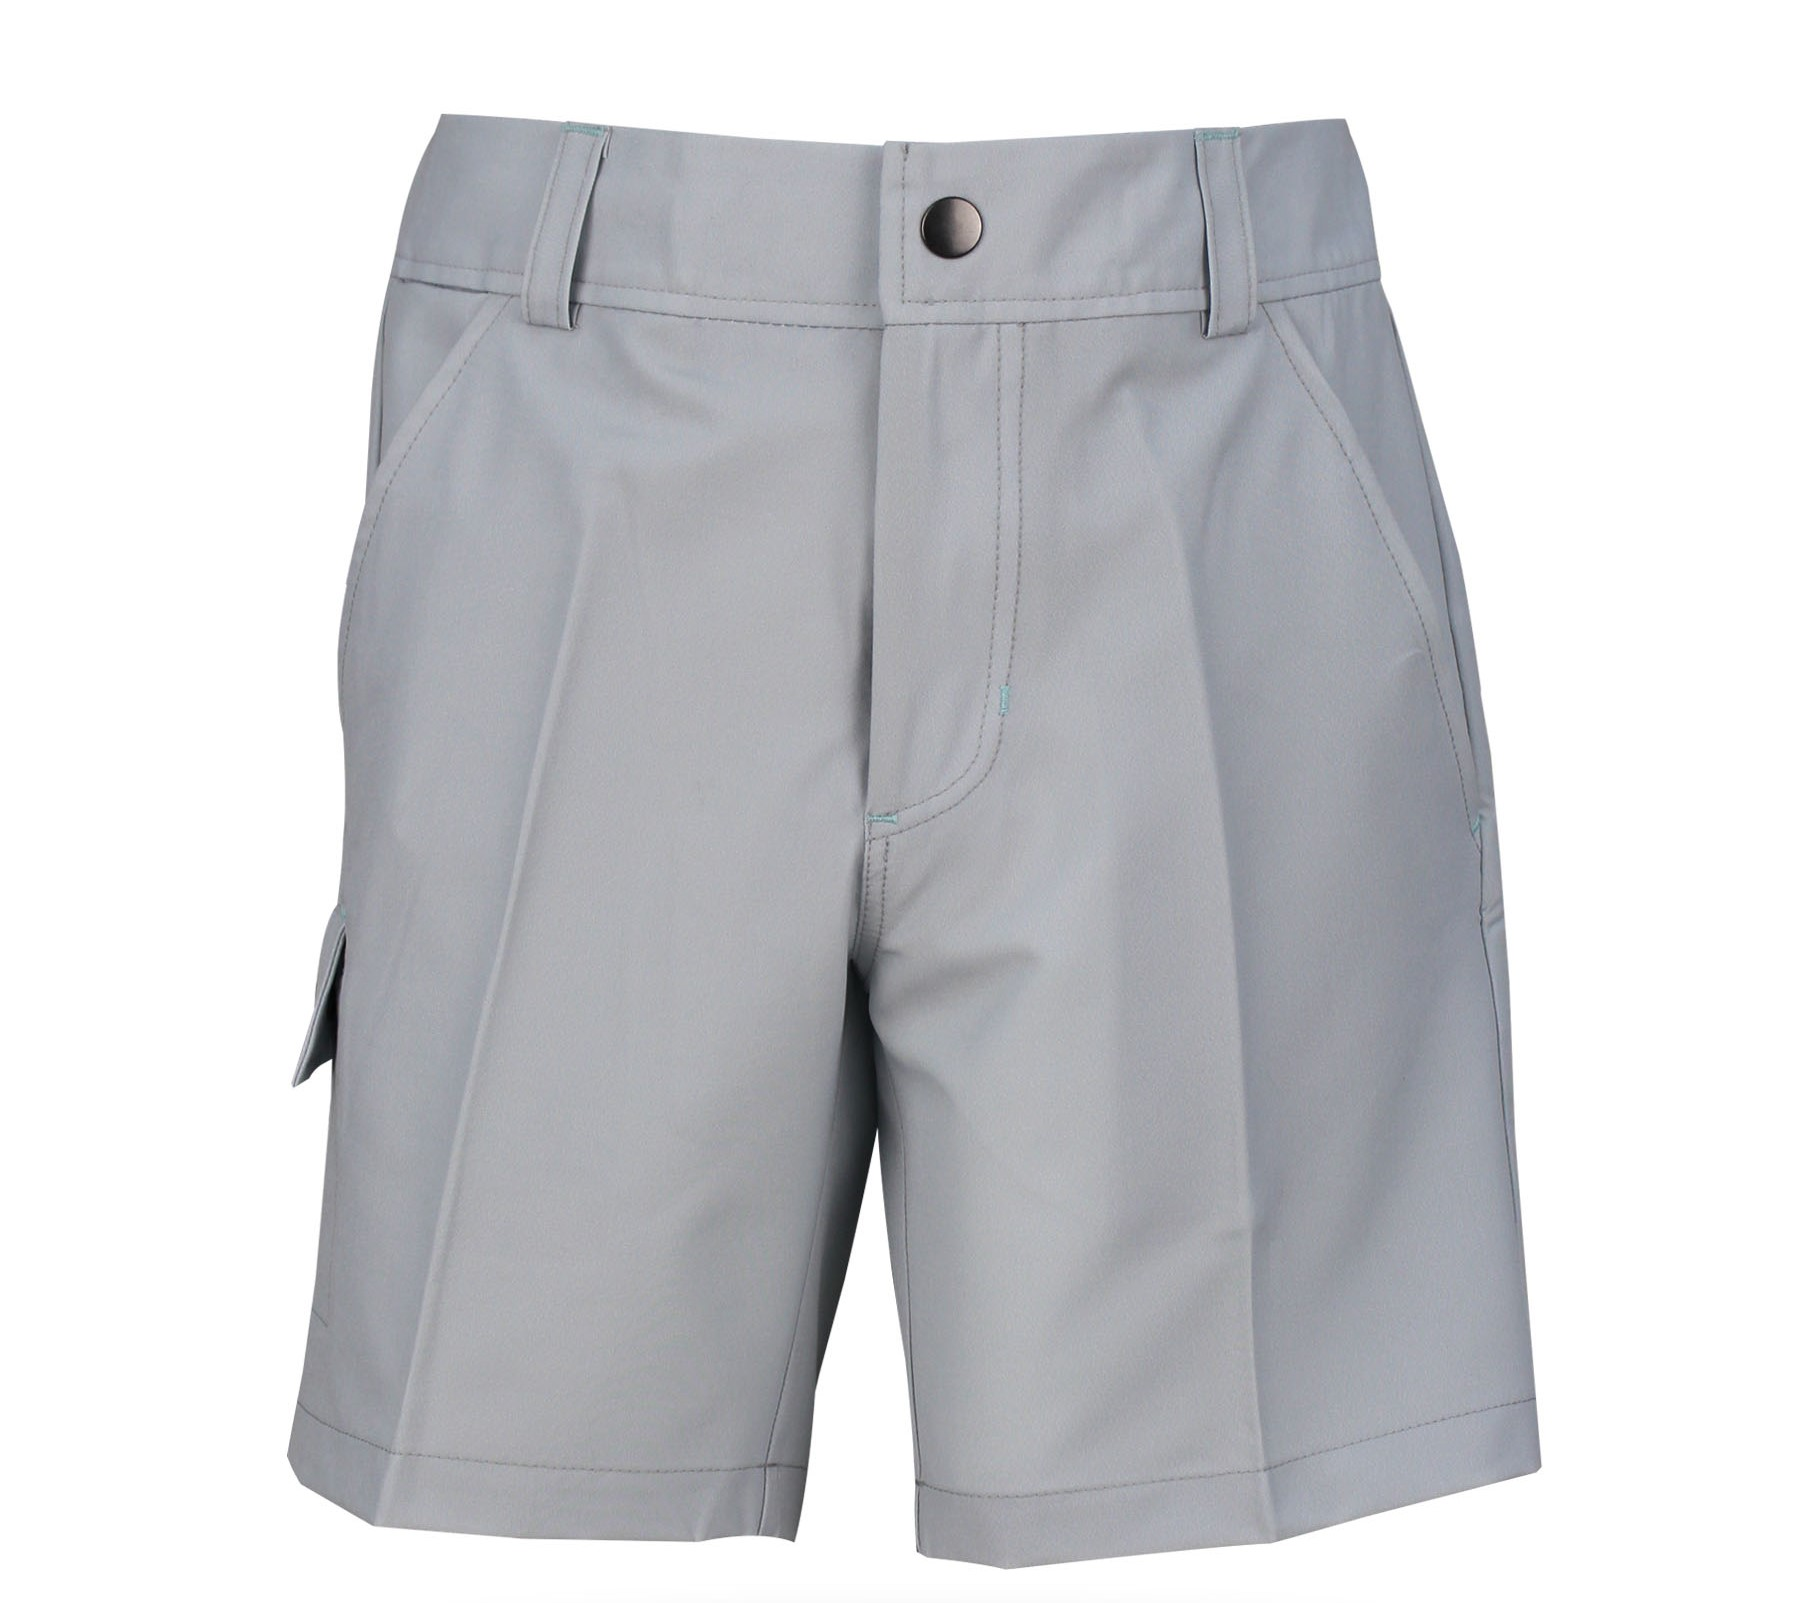 Conor Boy's Golf & Tennis Cargo Shorts in Solid Grey